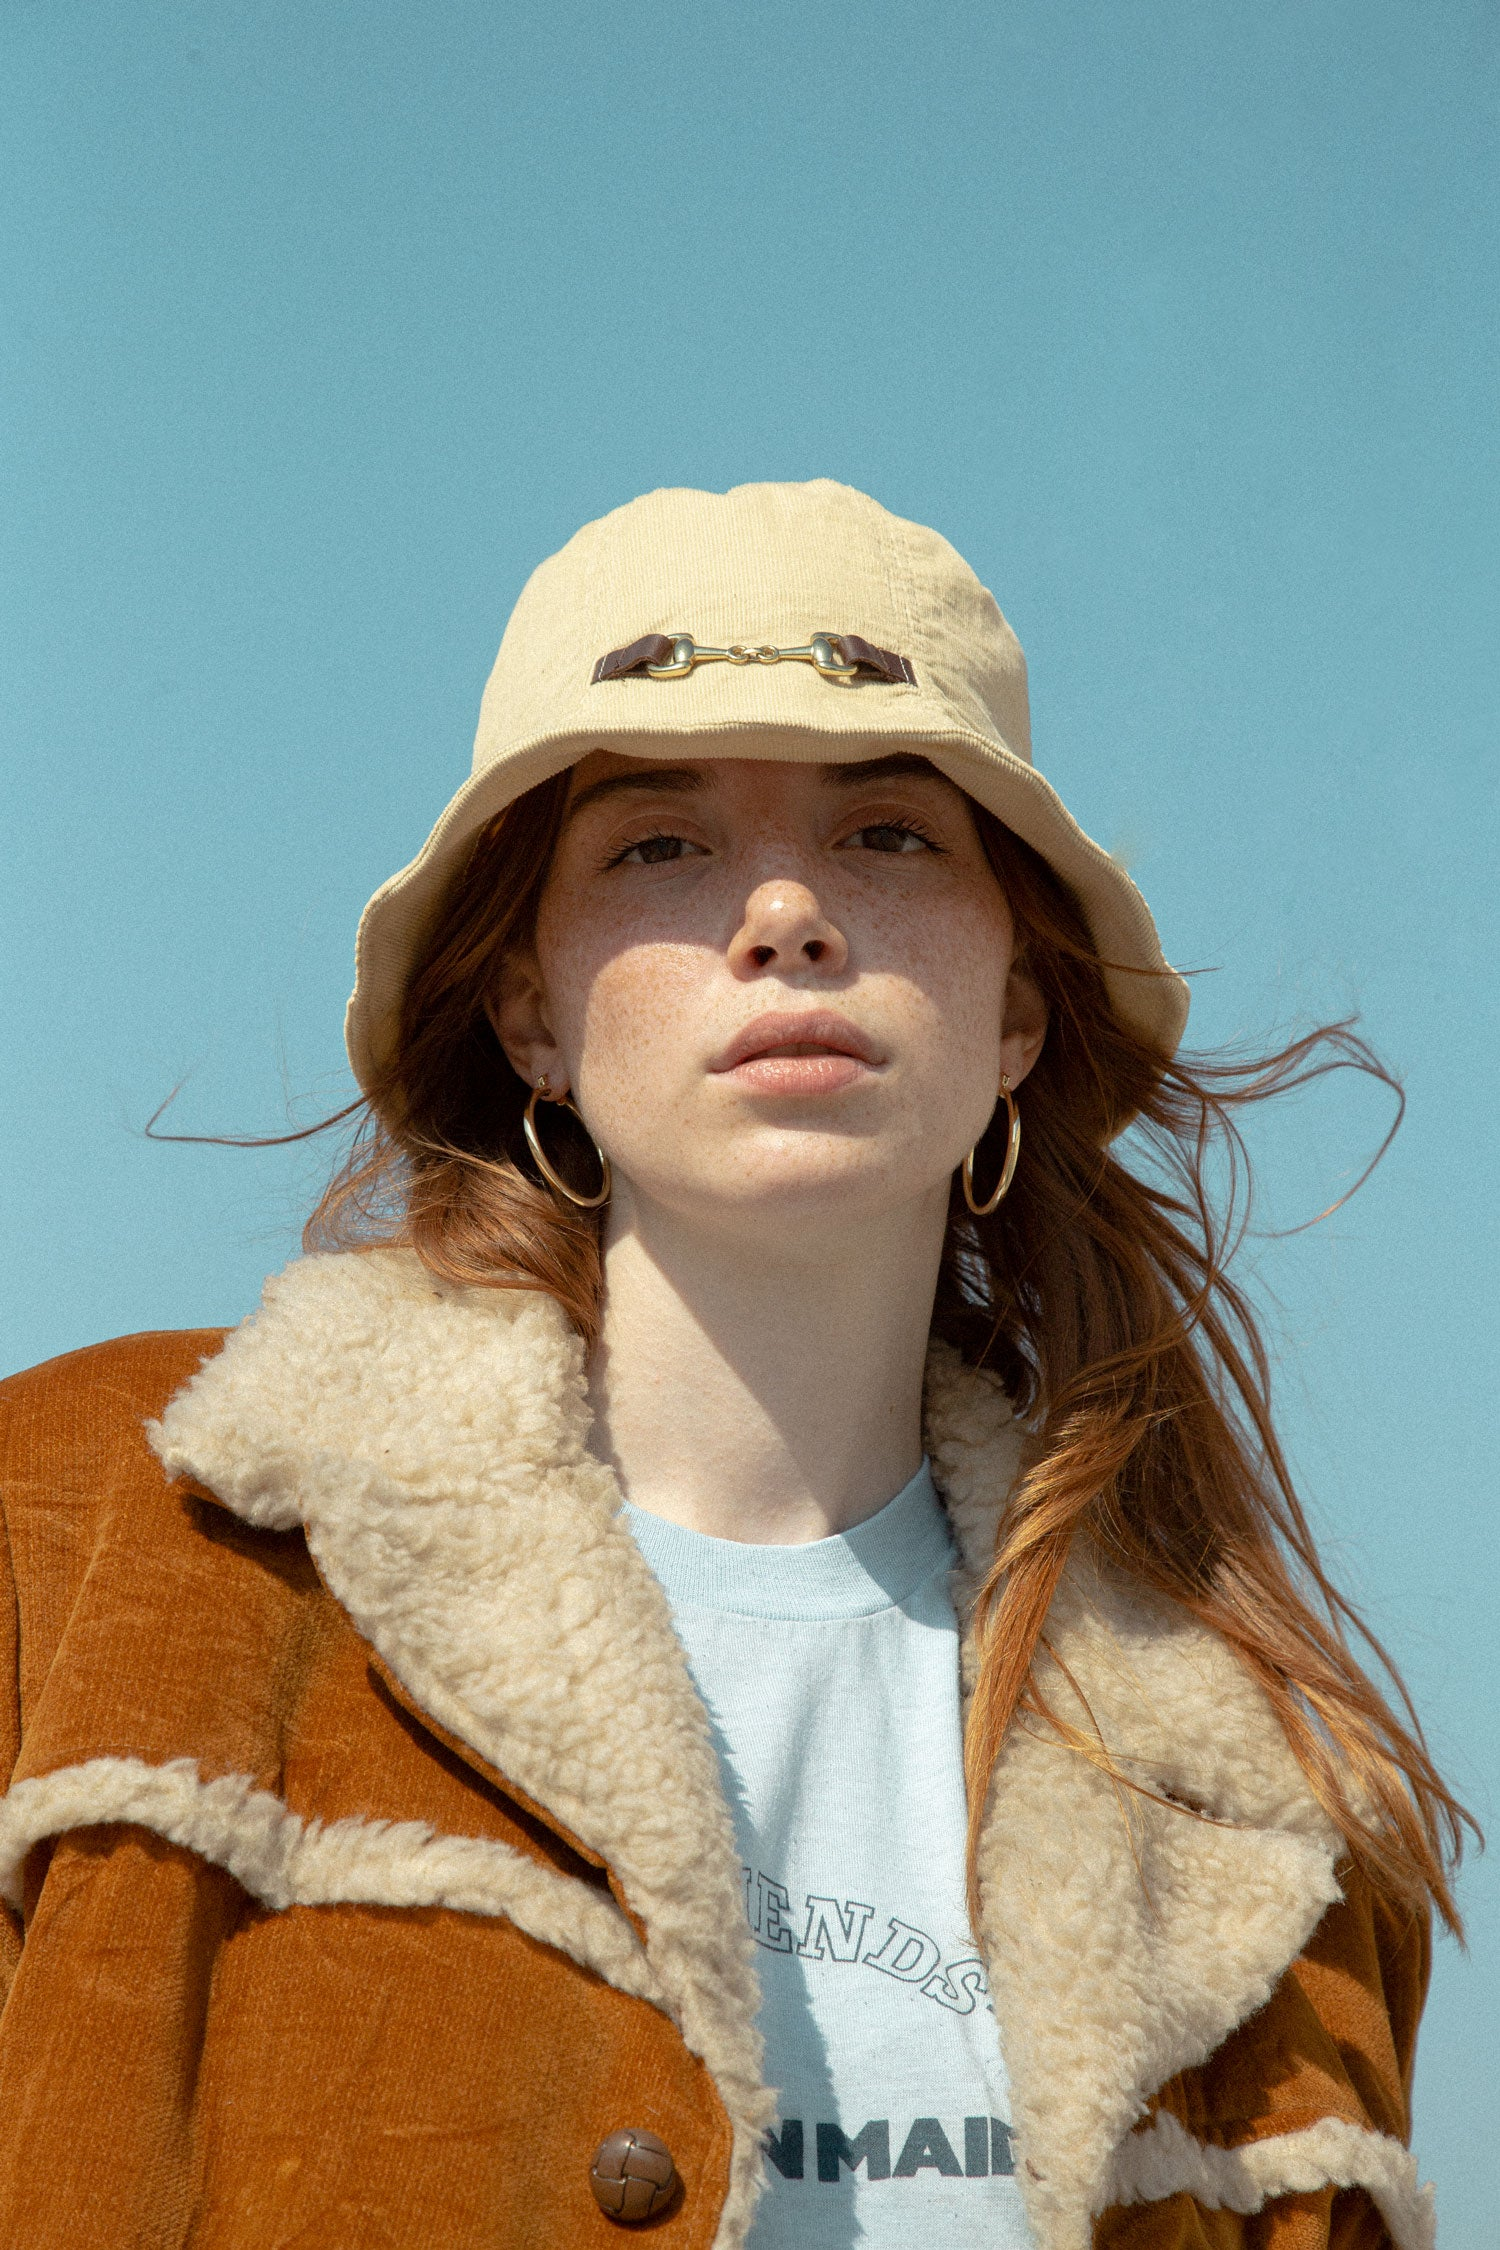 Model wearing vintage bucket hat, in front of blue sky.